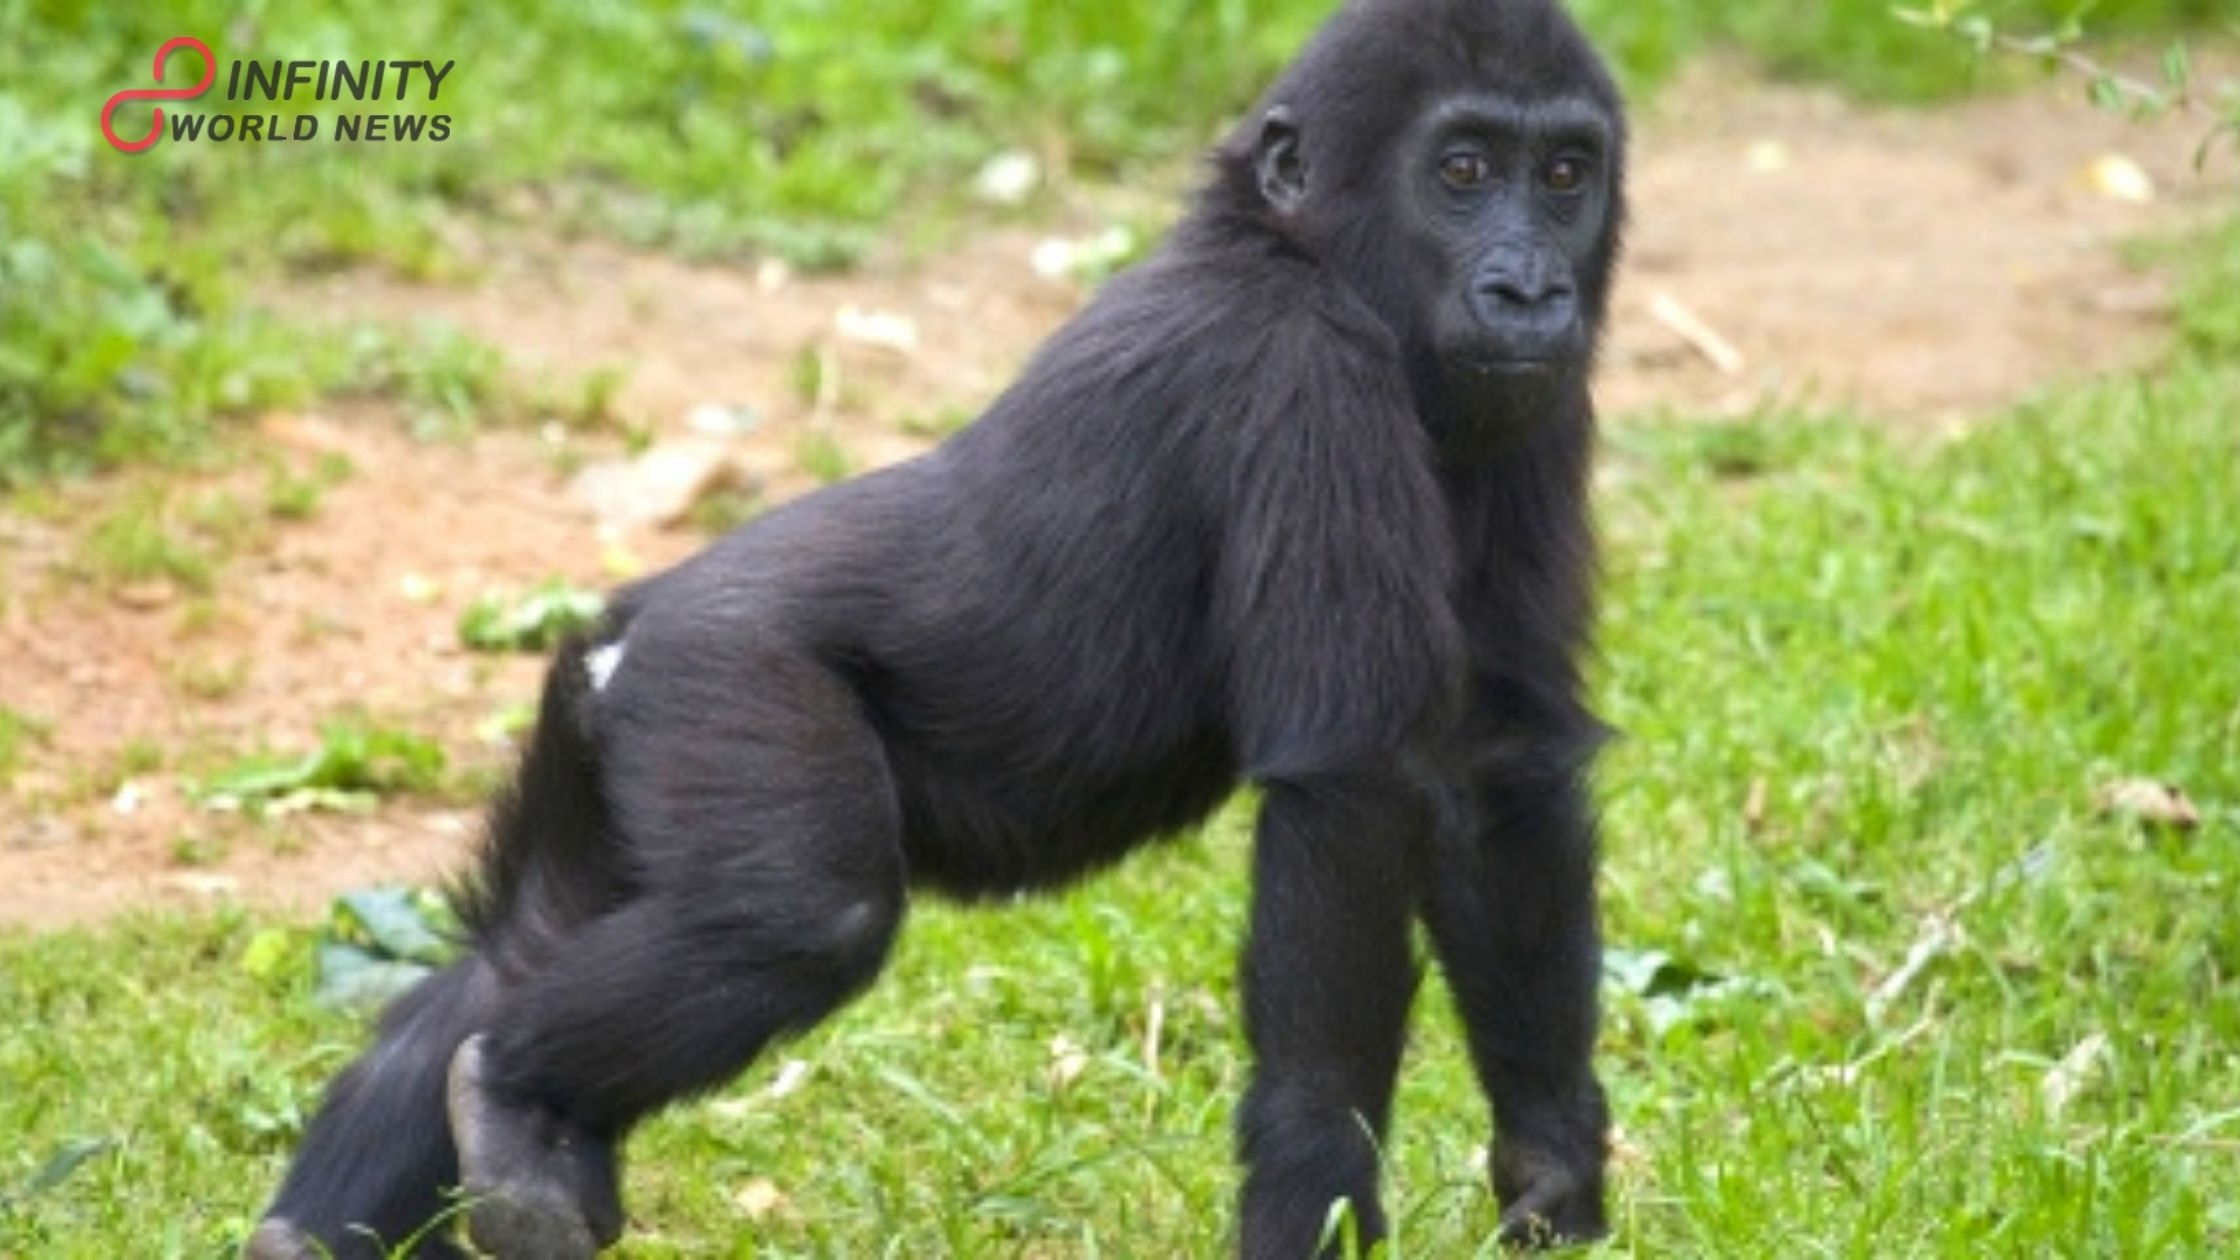 New Study Discovers, Gorillas, Orangutans, Whales Run a High Risk of Contracting Covid-19